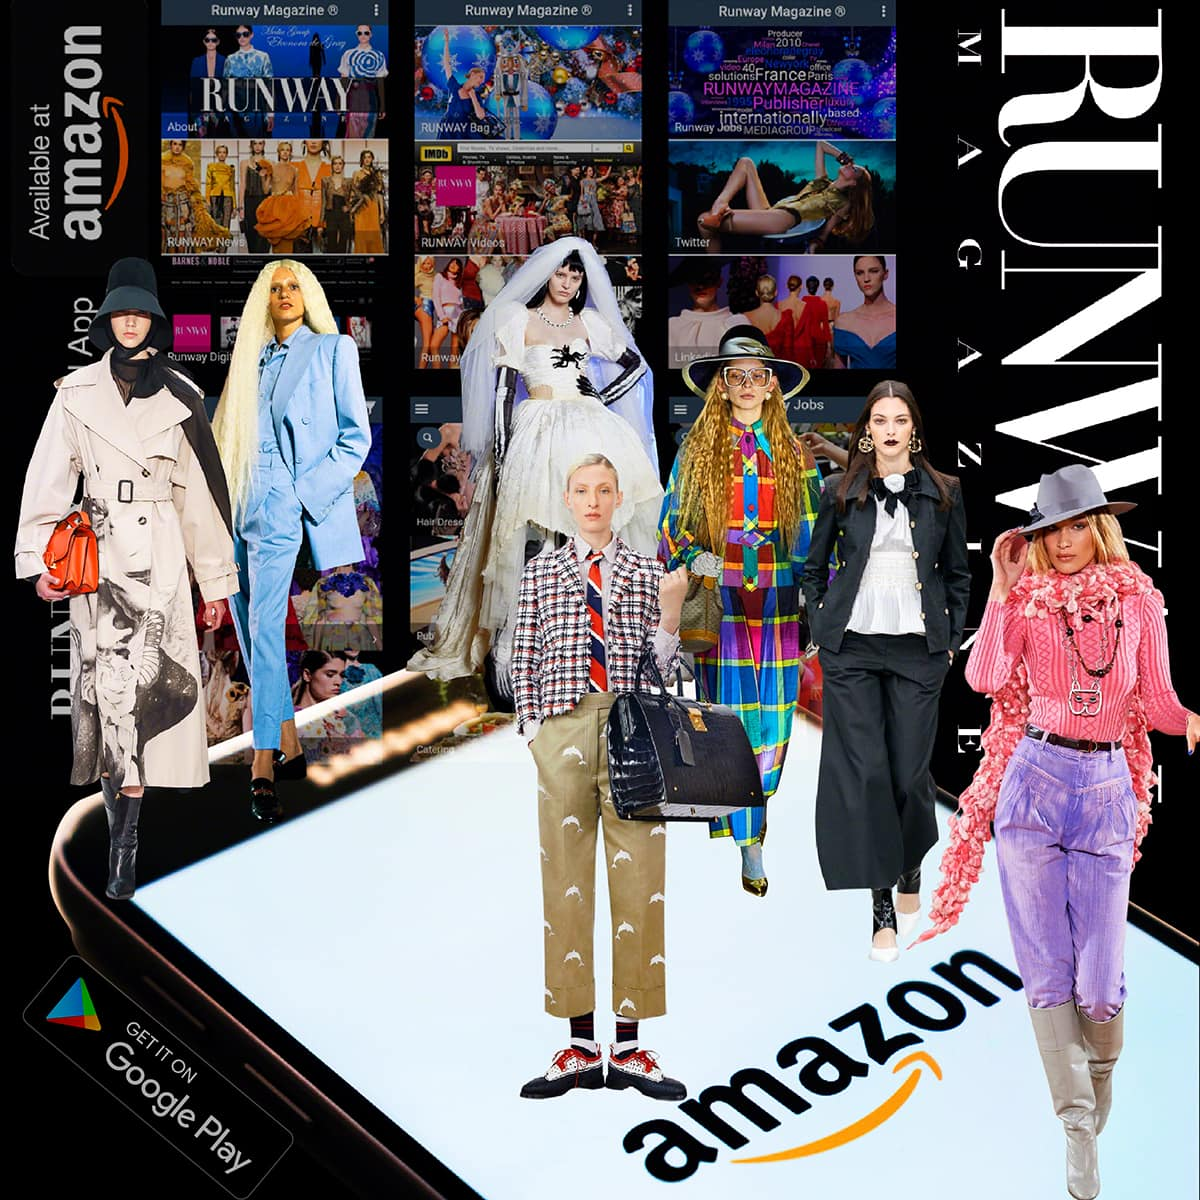 RUNWAY MAGAZINE application on Google Play and Amazon